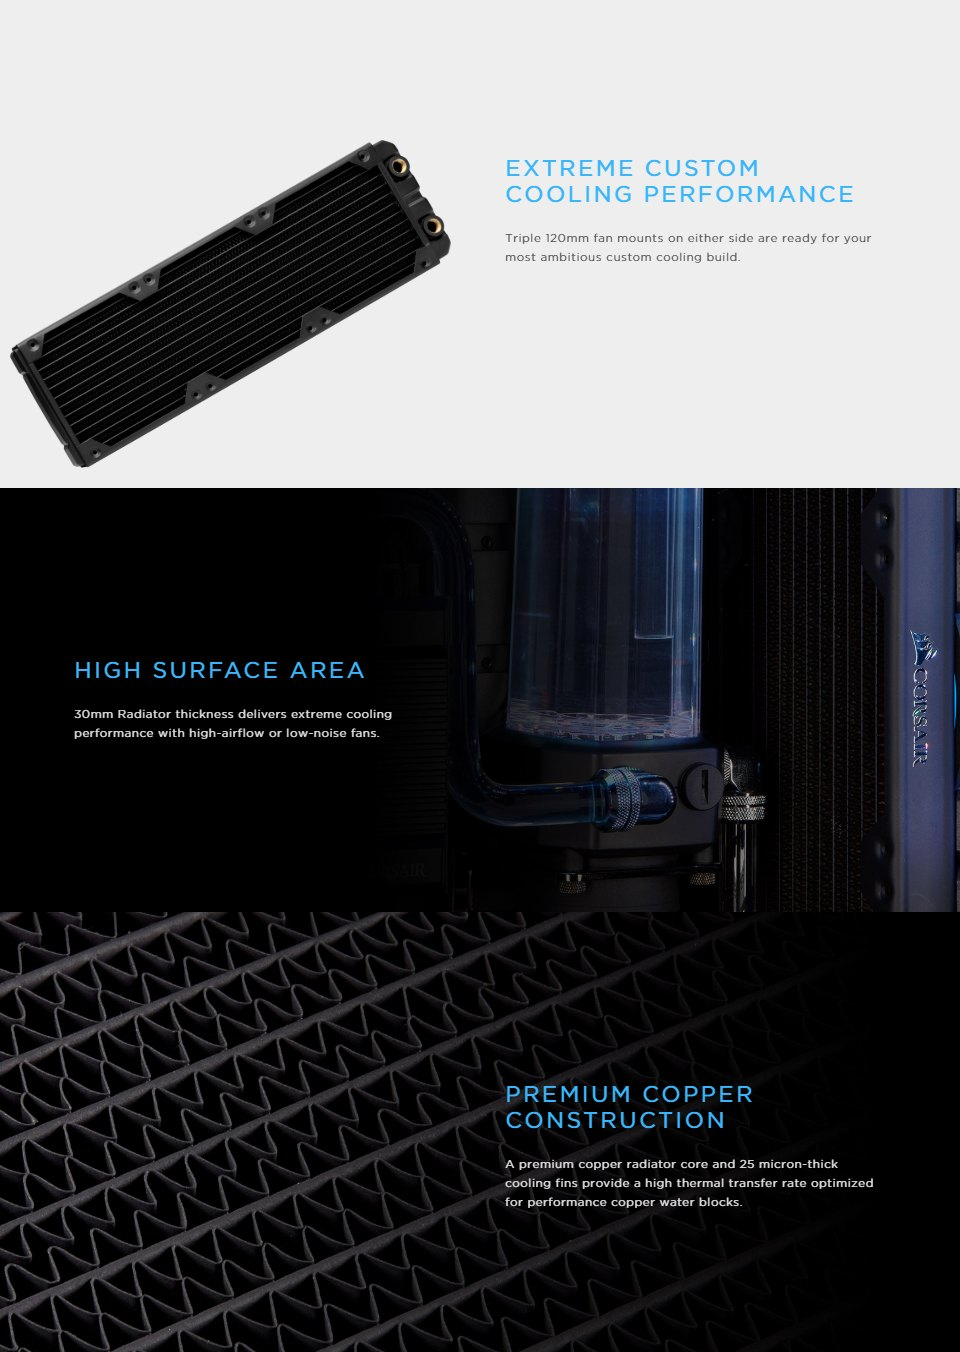 Corsair Hydro X Series XR5 360mm Water Cooling Radiator features